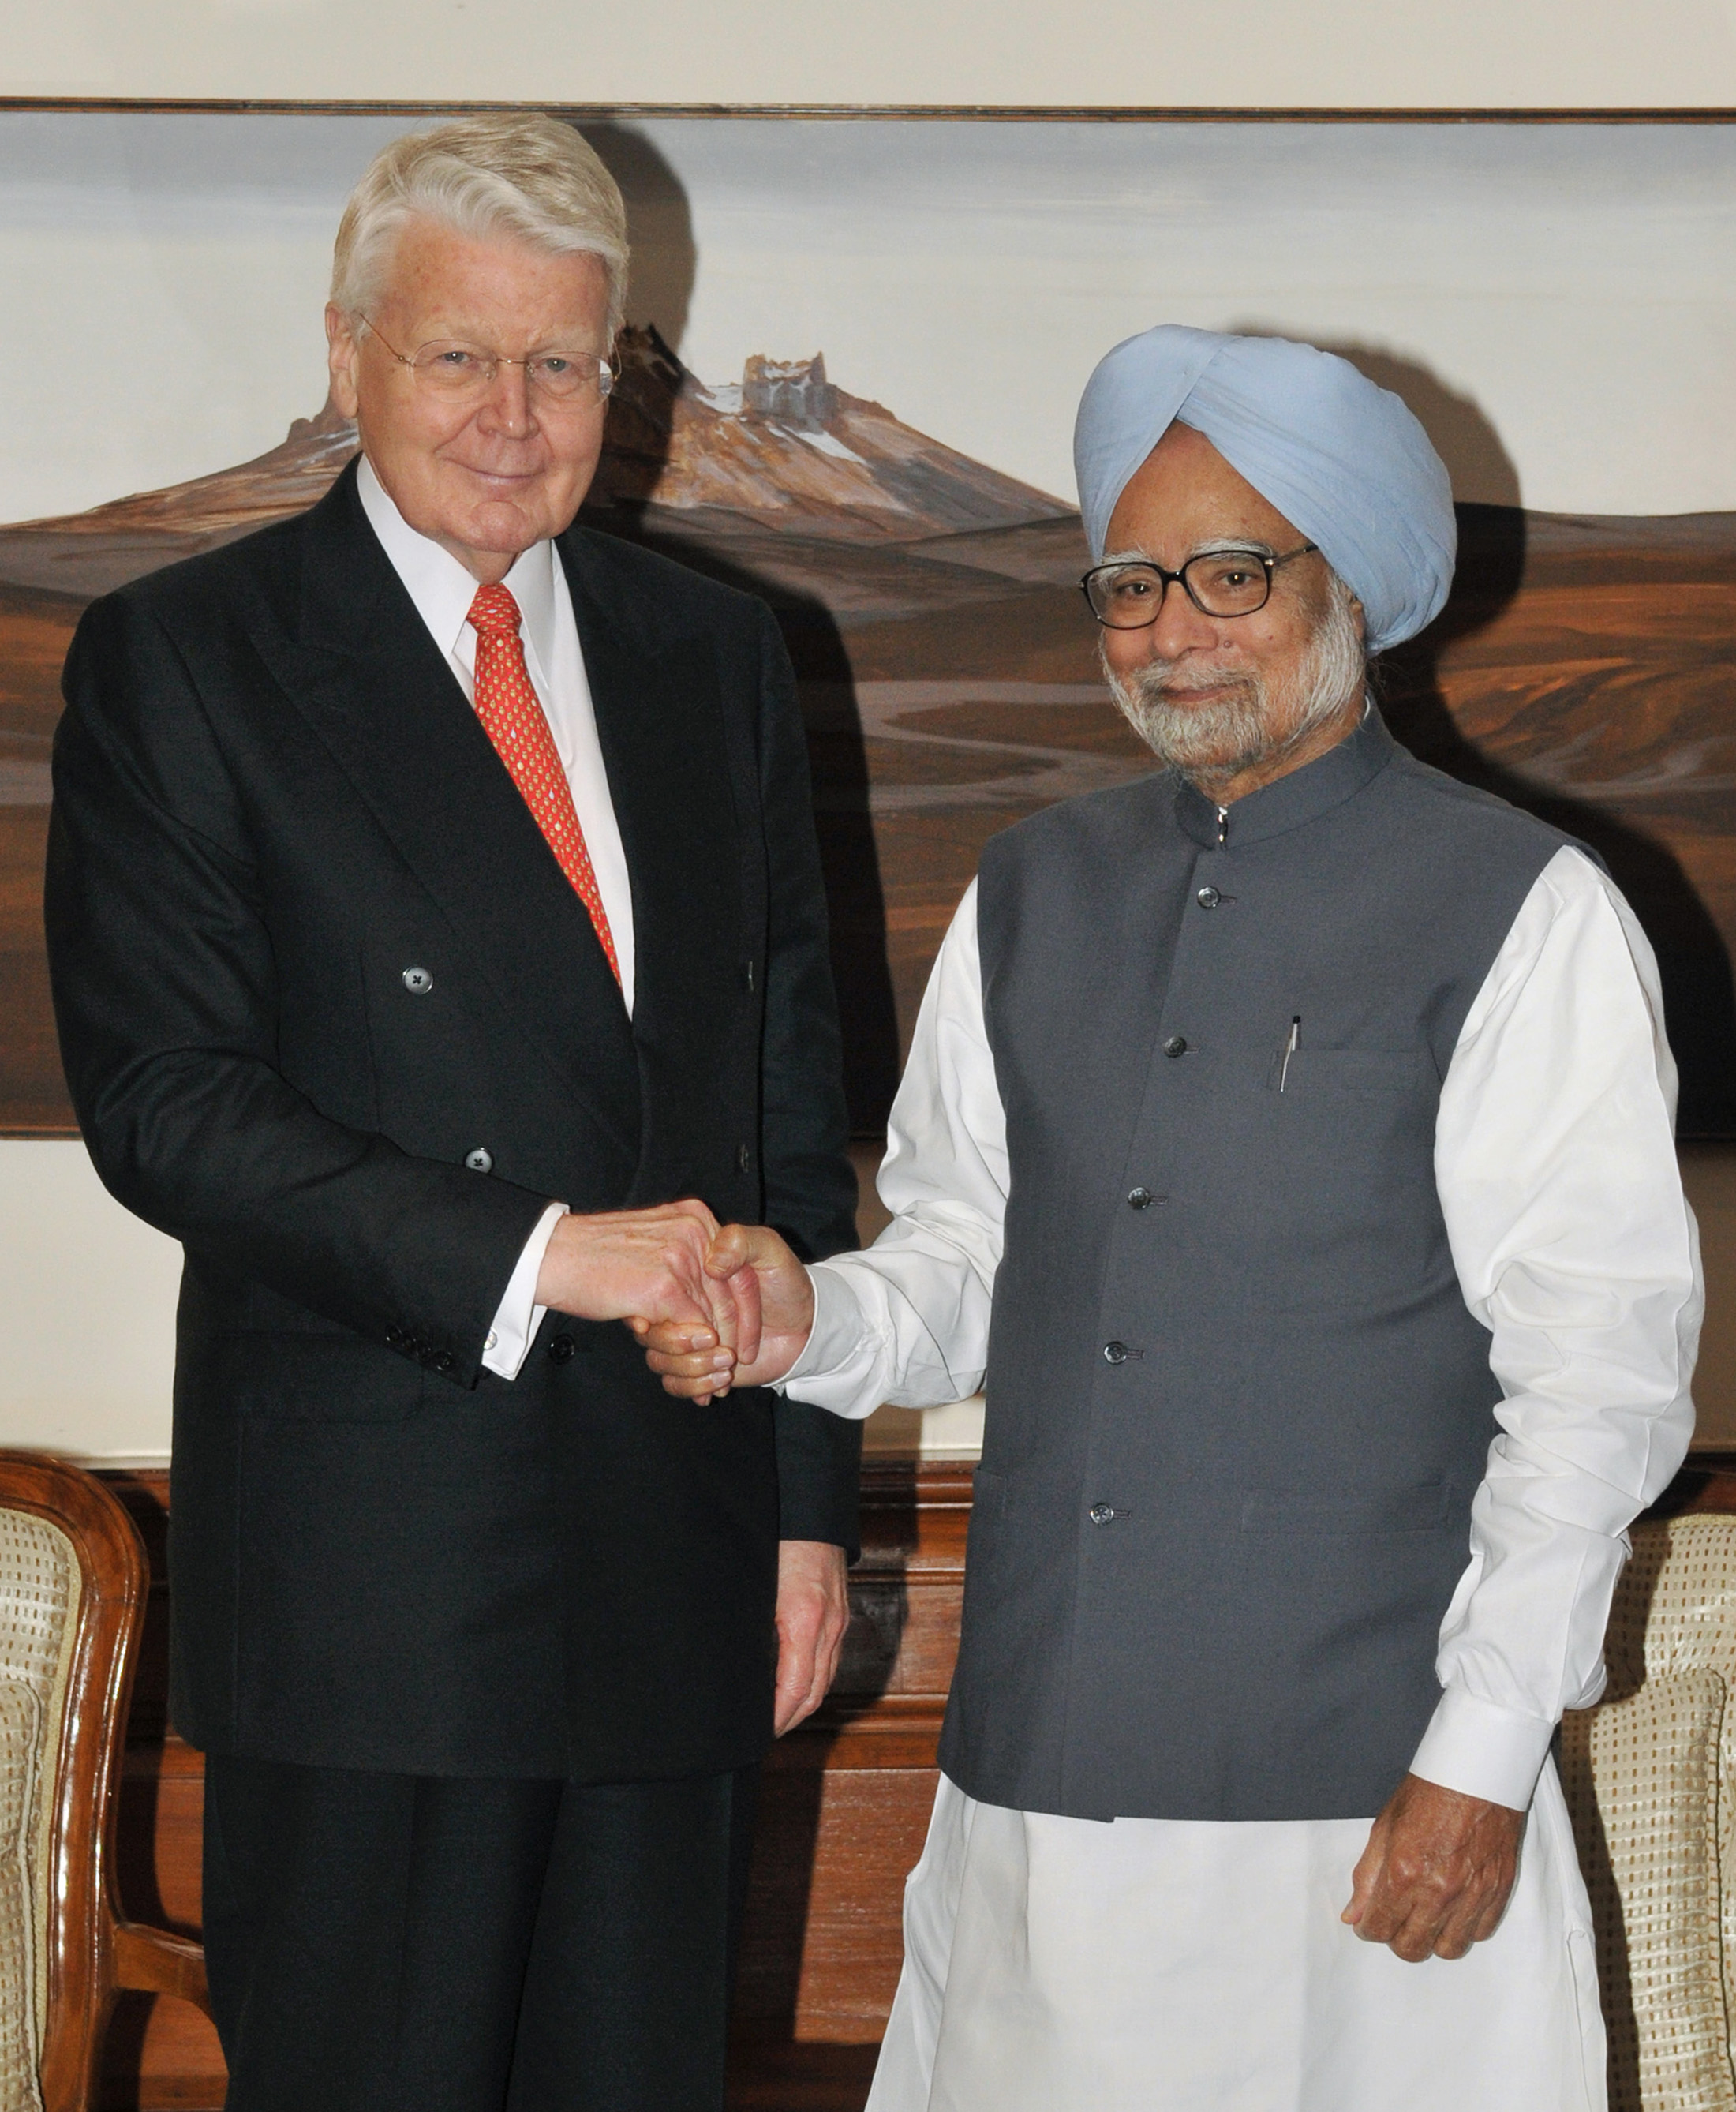 The President of Iceland with the Prime Minister of India